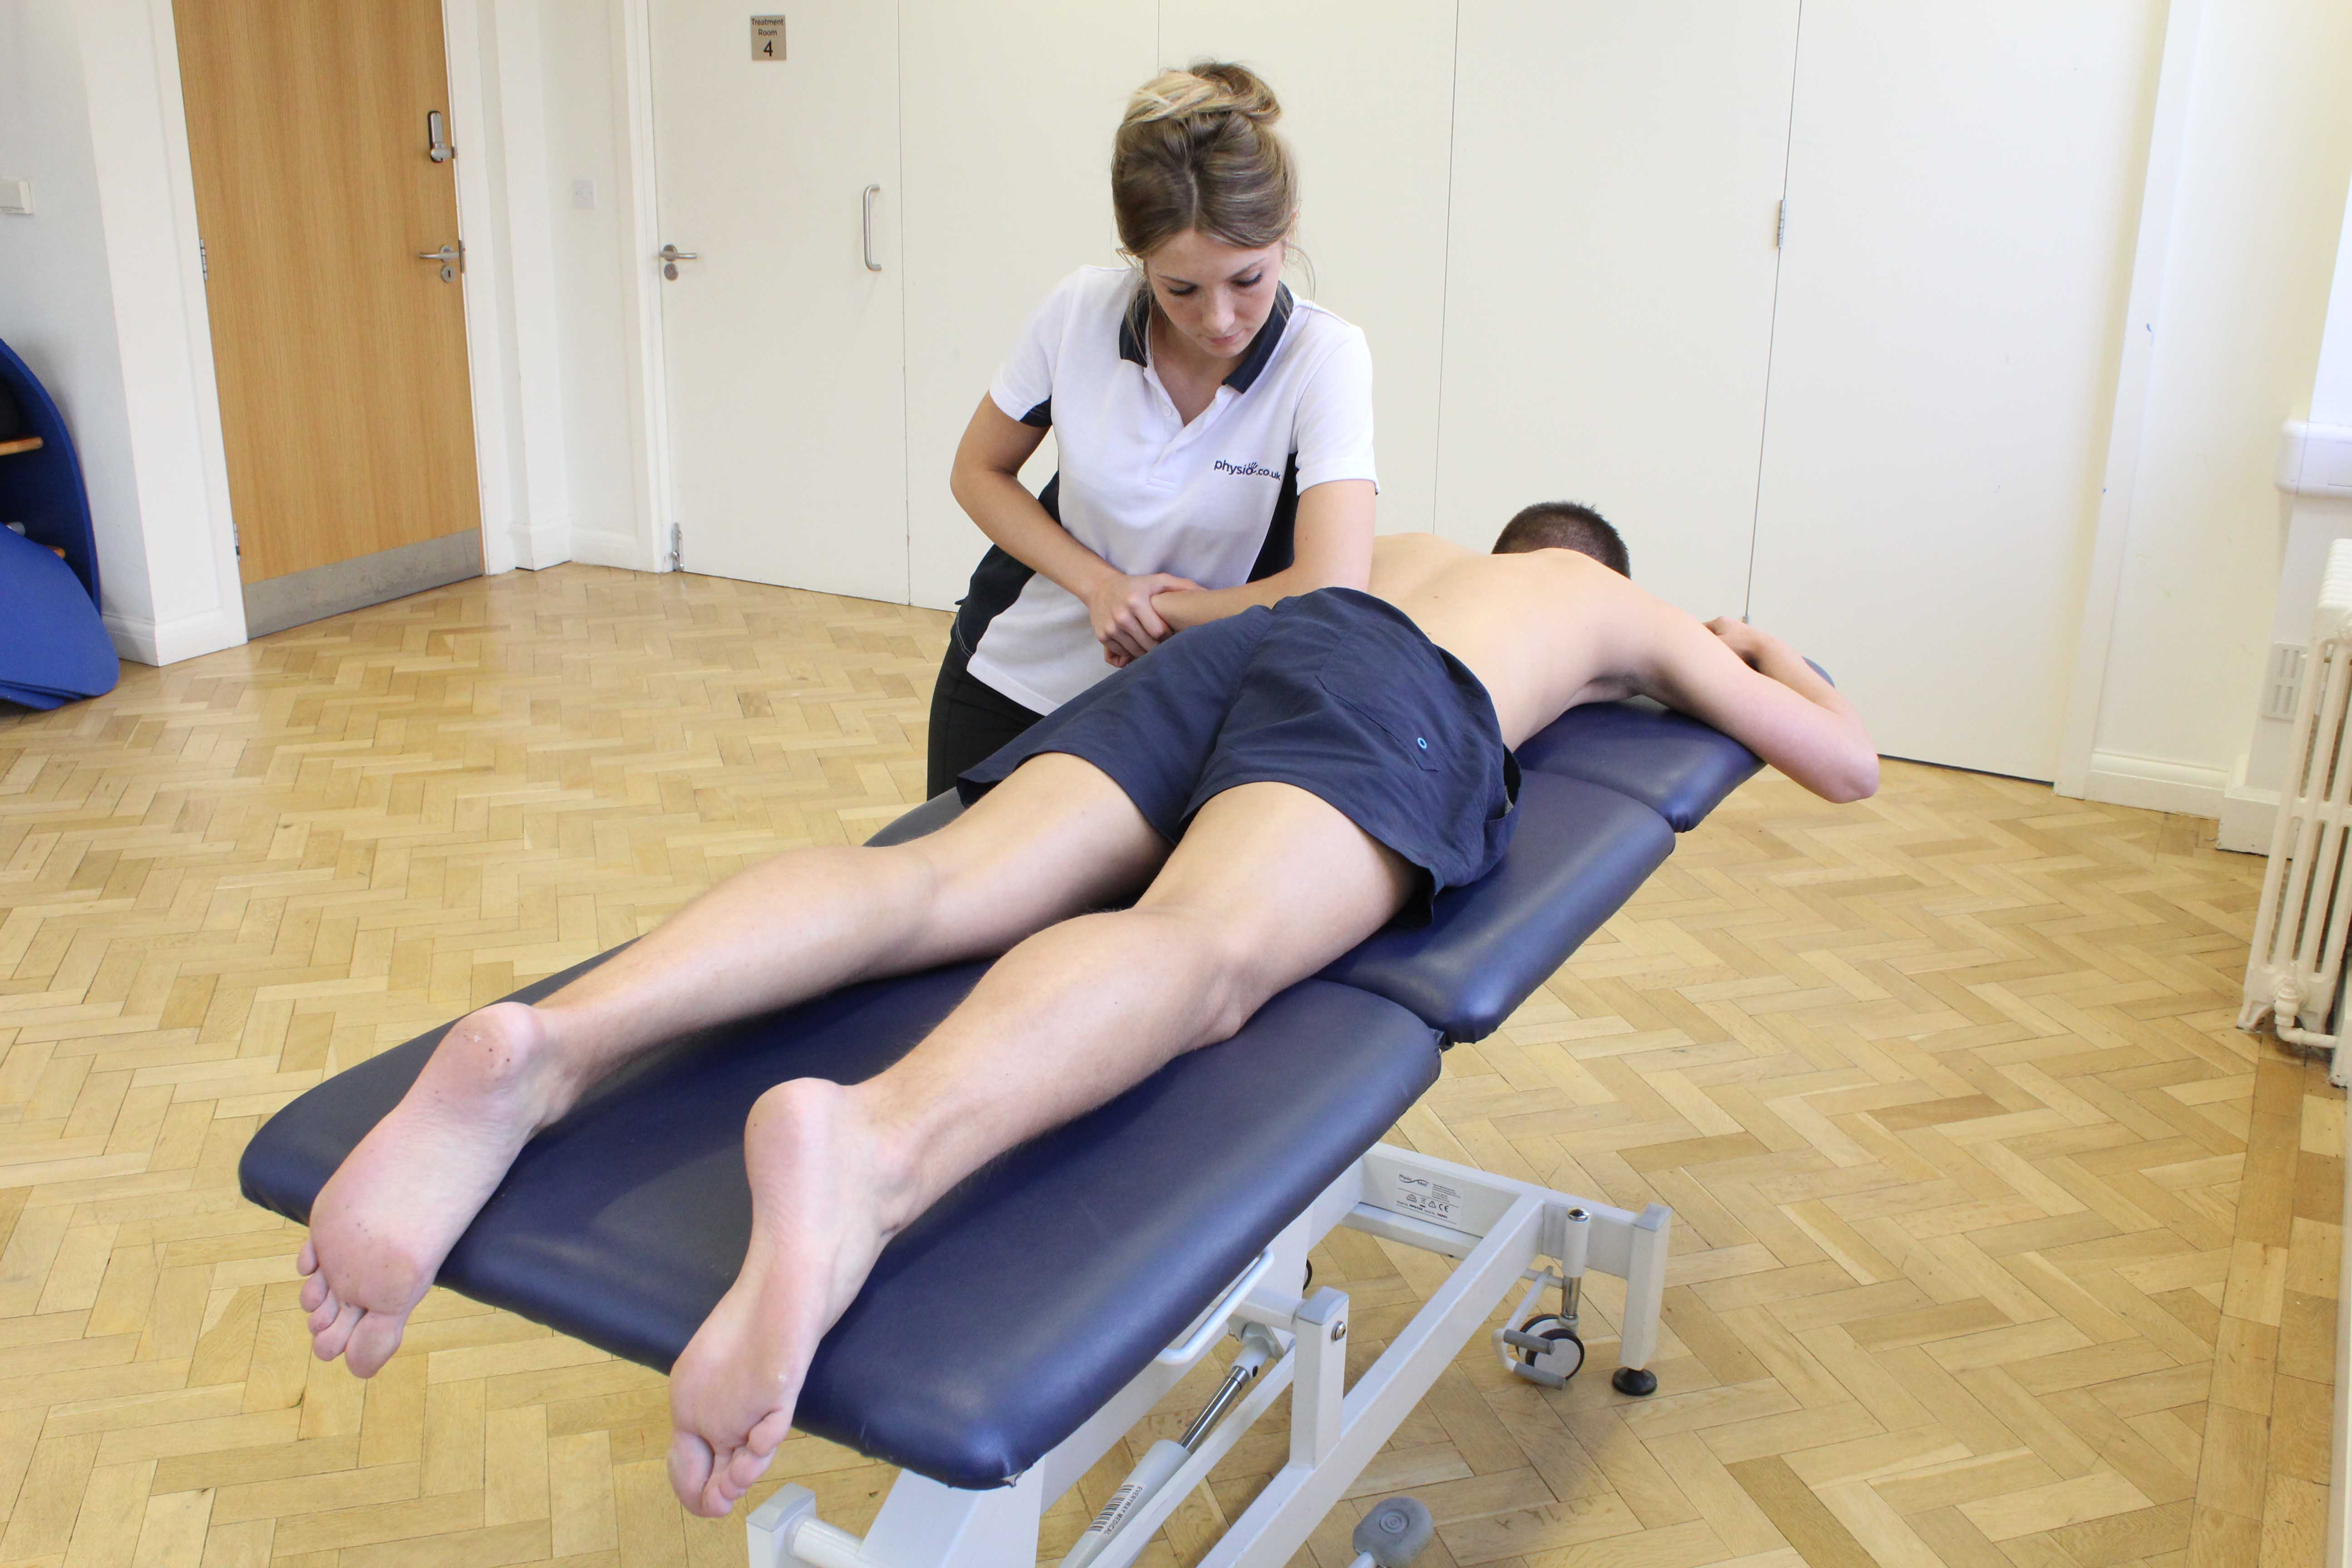 Deep tissue massage can help lower muscle tone and relieve joint stiffness